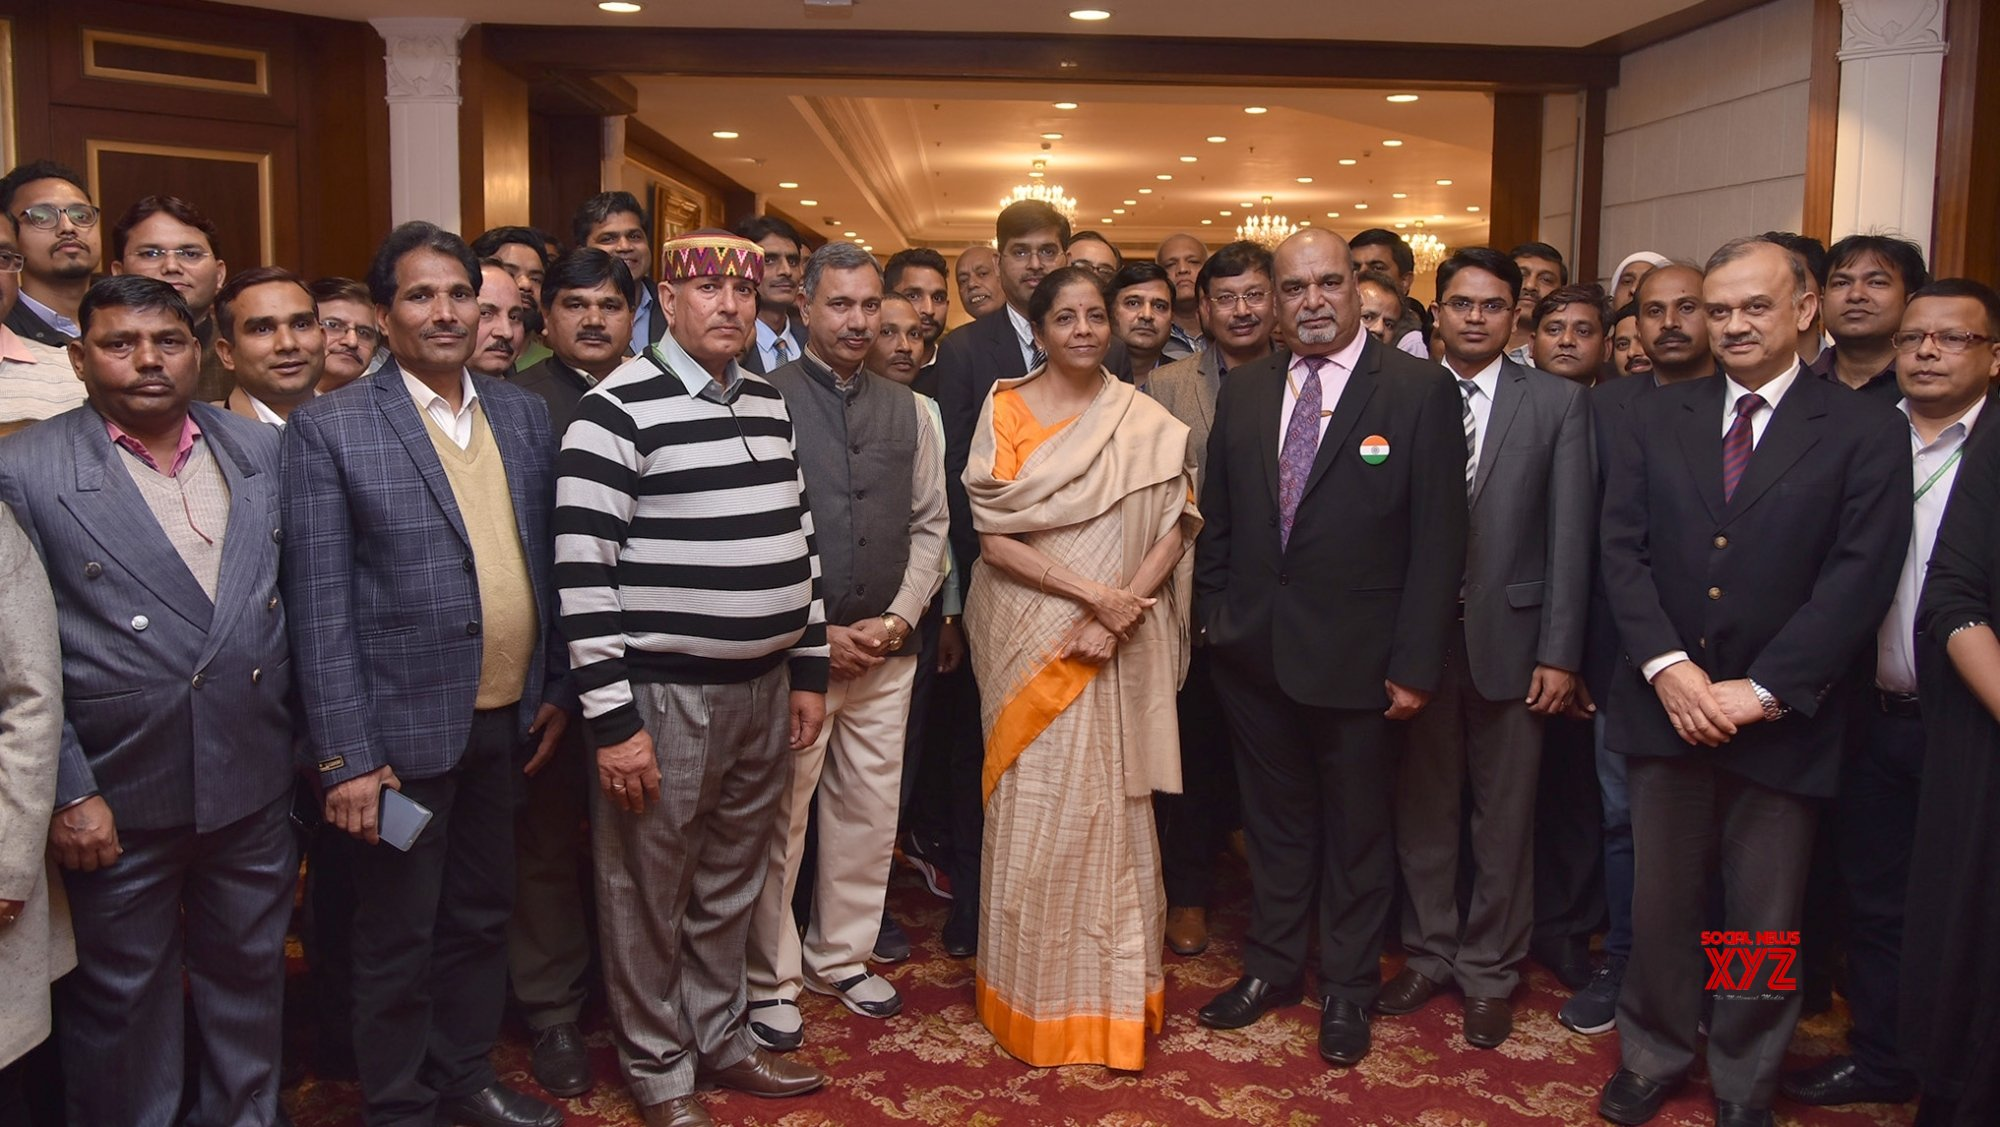 New Delhi: Union Finance Minister Sitharaman meets staff and officers of the Budget Division and Budget Press #Gallery